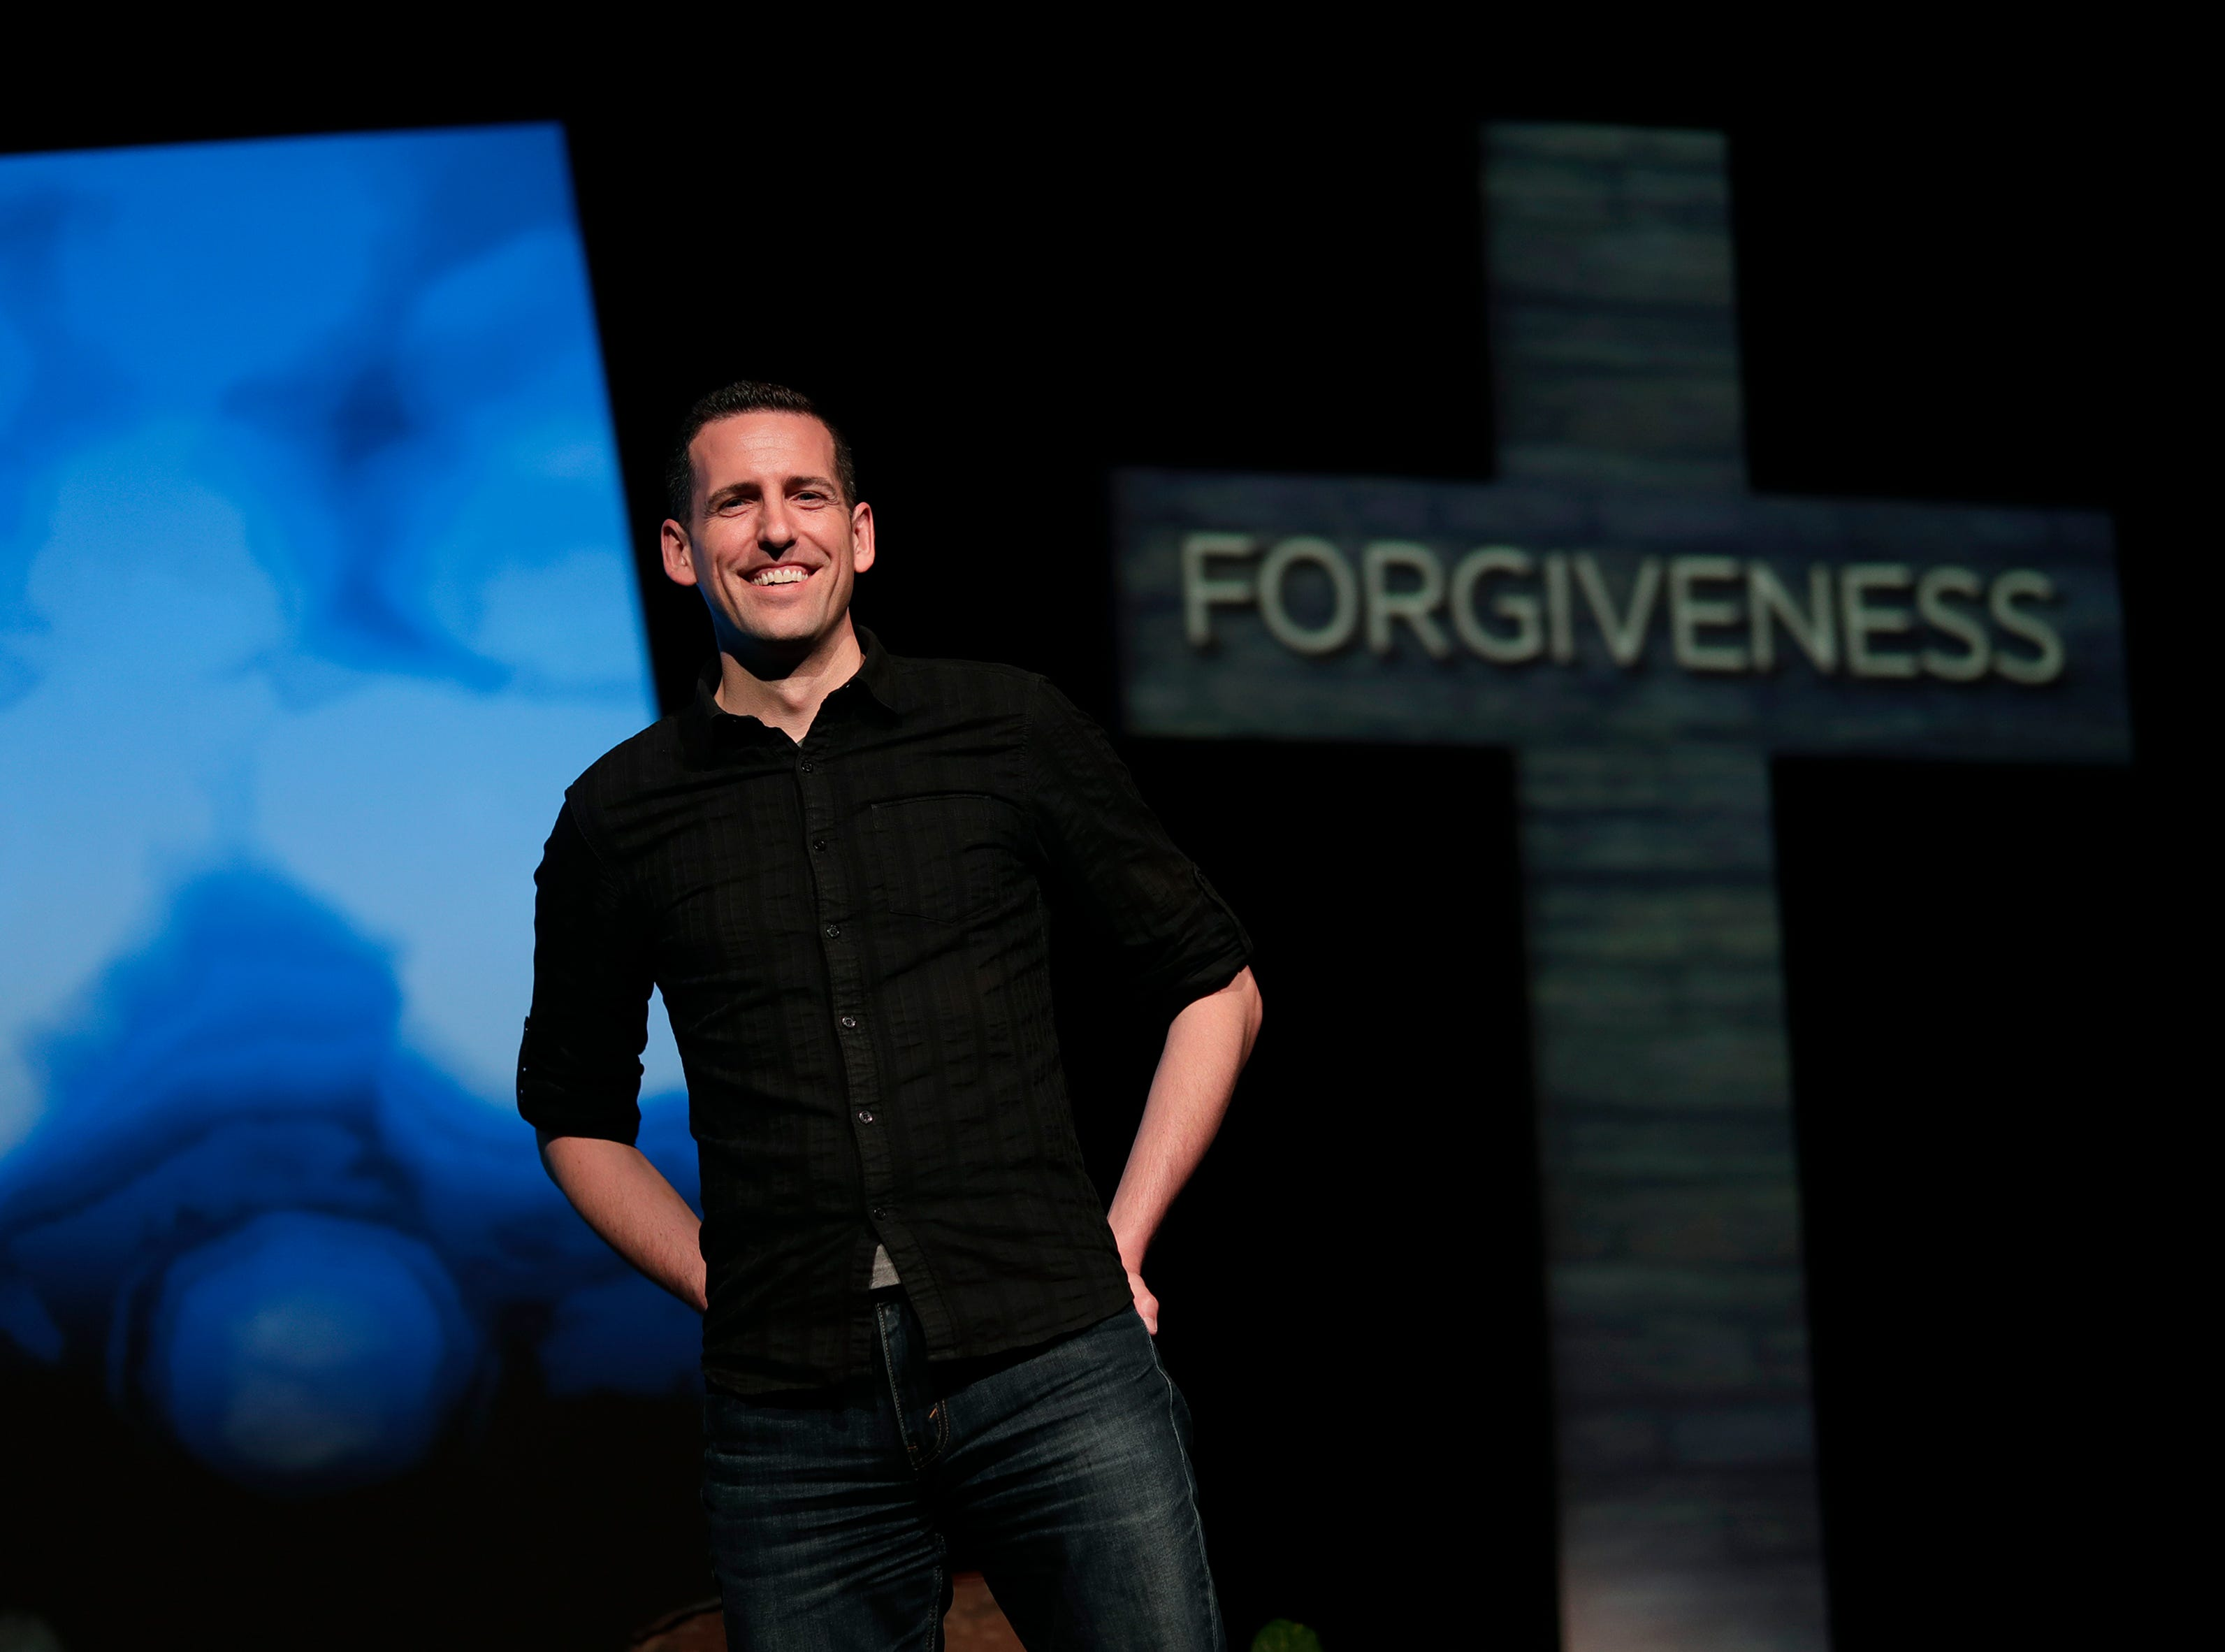 Pastor Mike Novotny will be taking over a religious television broadcast called Time of Grace. He is seen here at The CORE church Tuesday, April 30, 2019, where the show will be based out of in Appleton, Wis. Dan Powers/USA TODAY NETWORK-Wisconsin